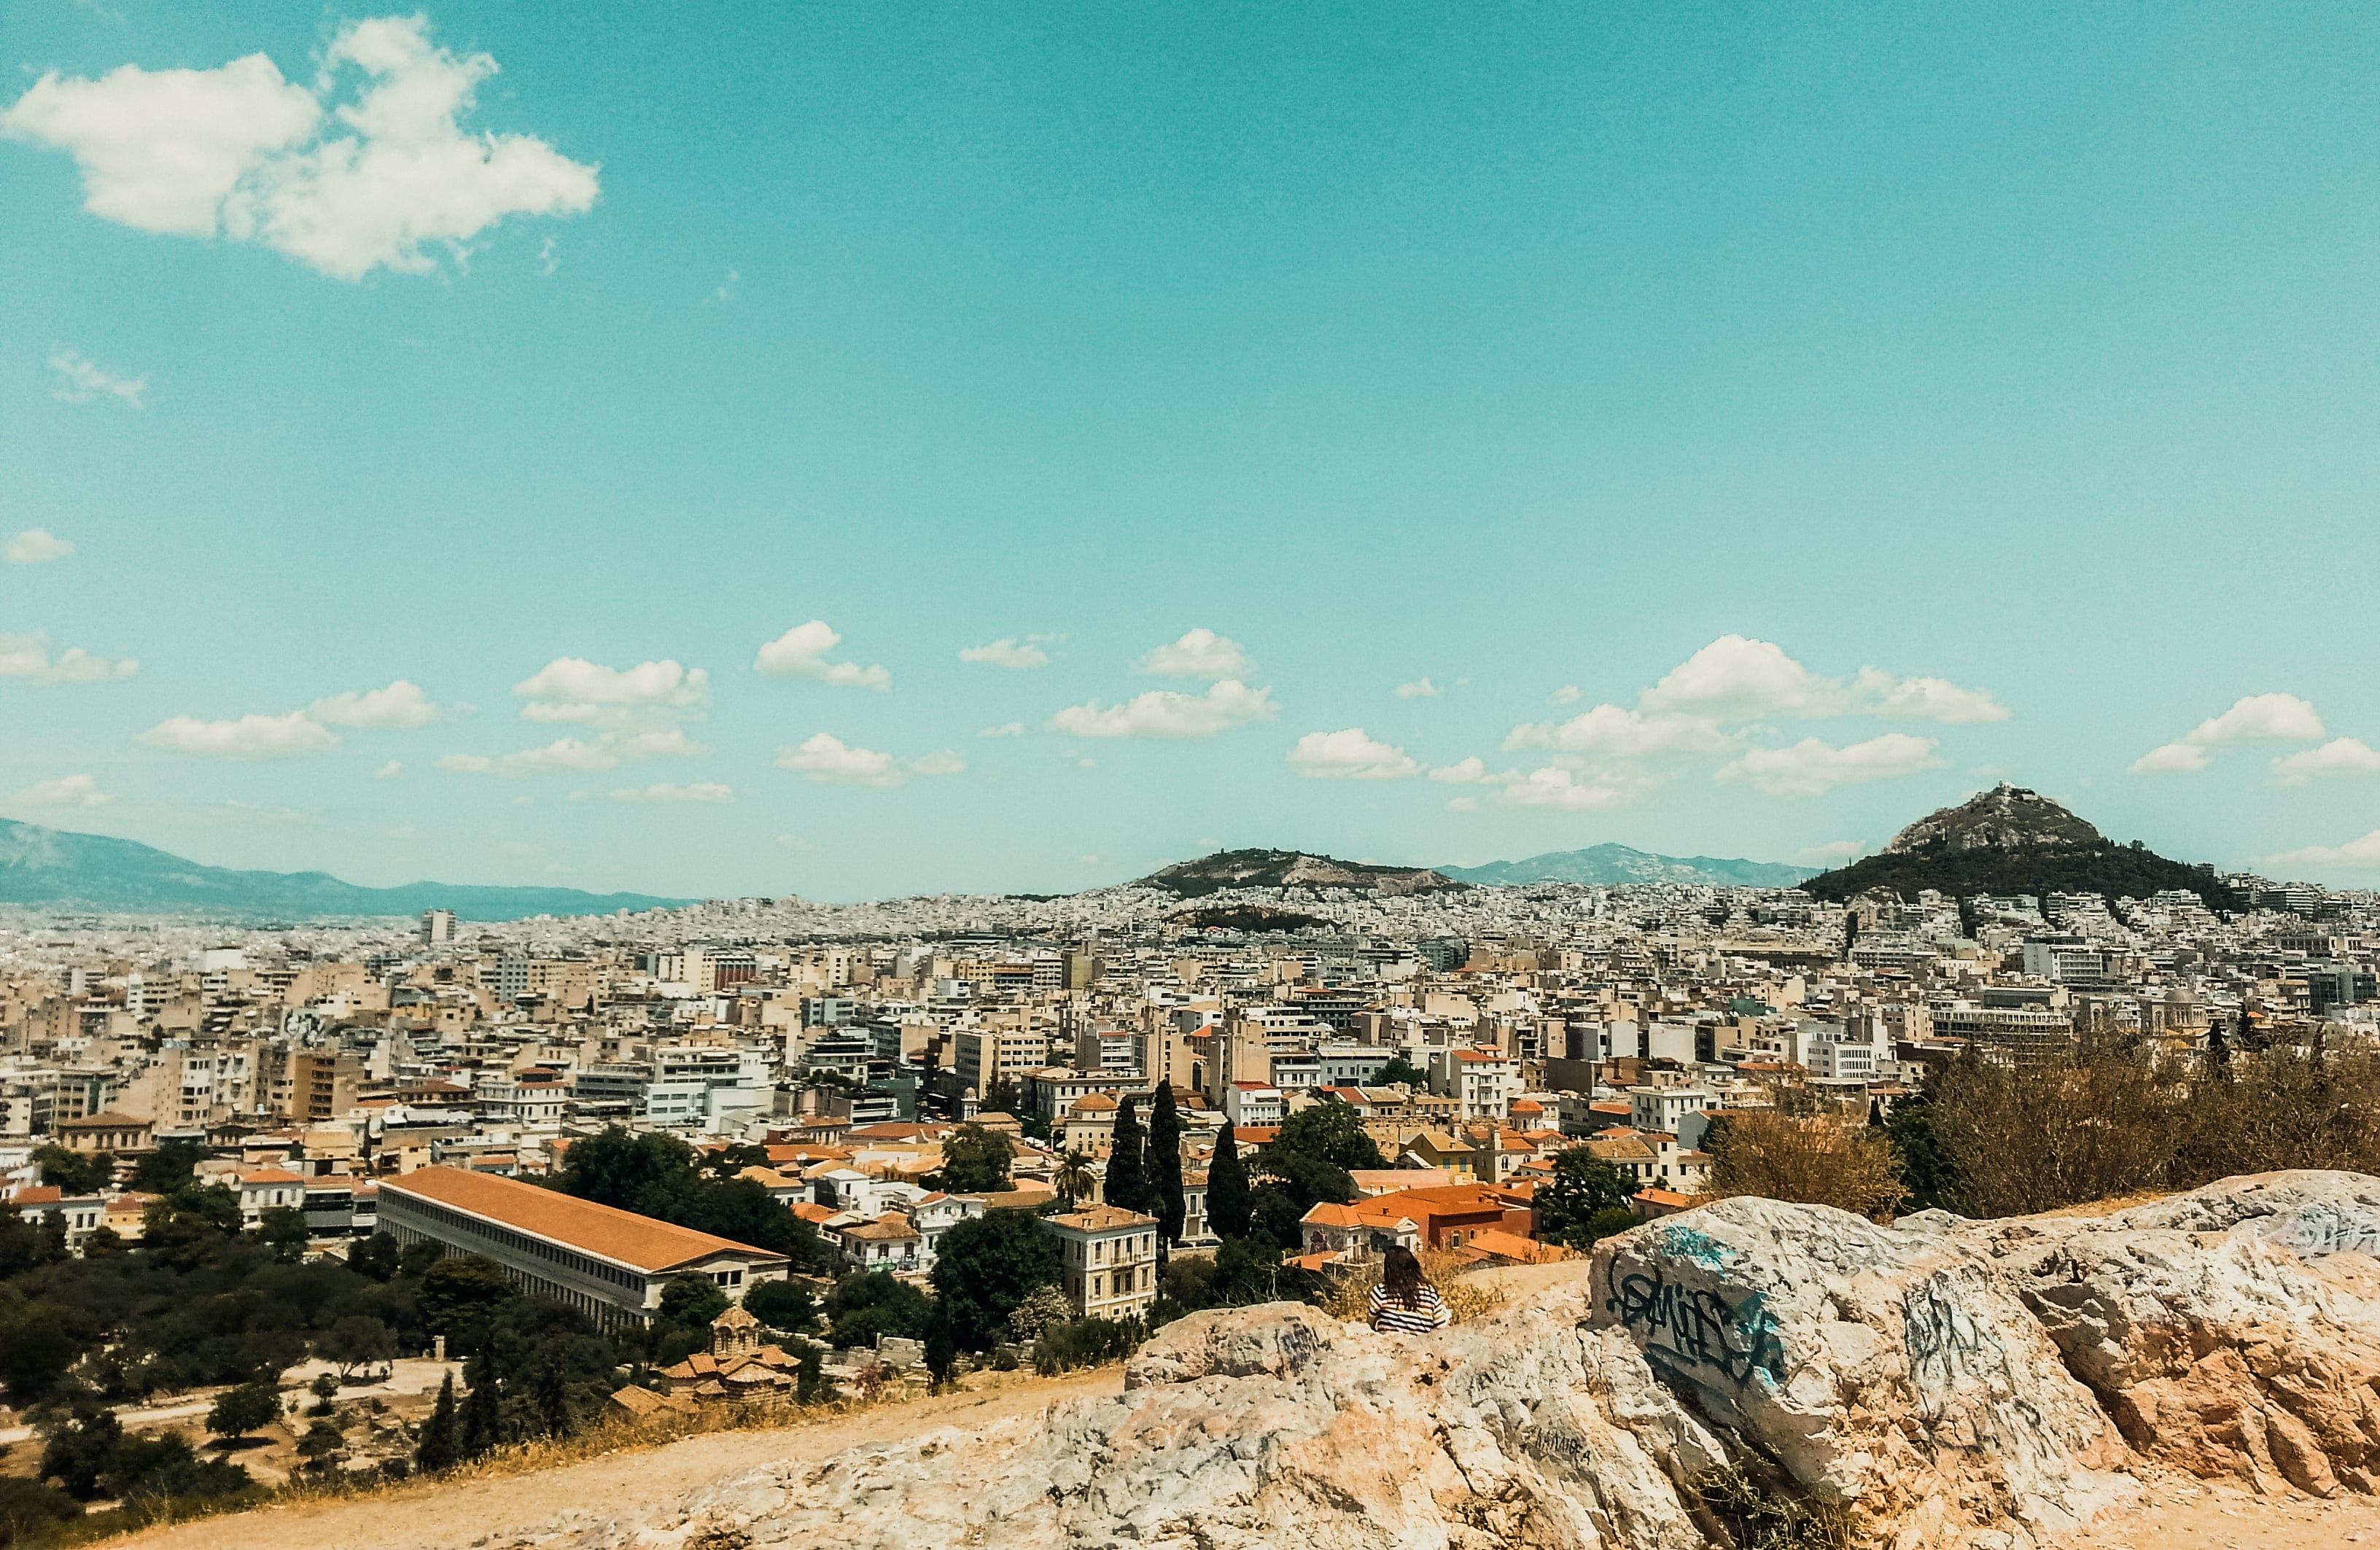 View of the city of Athens from Acropolis.